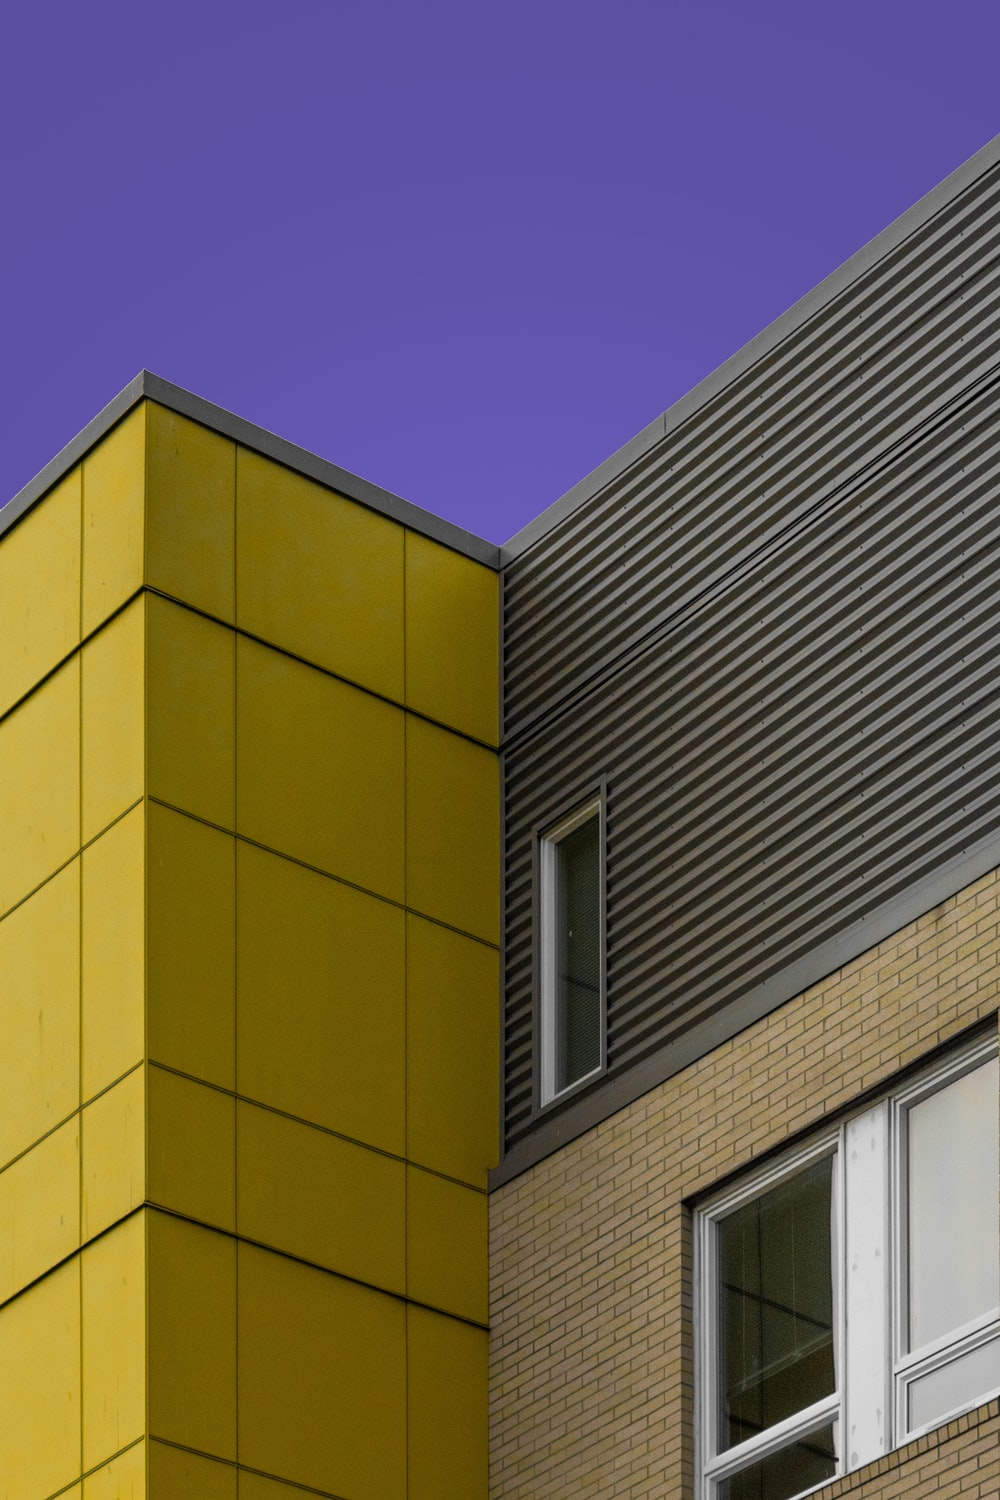 yellow concrete building under blue sky during daytime